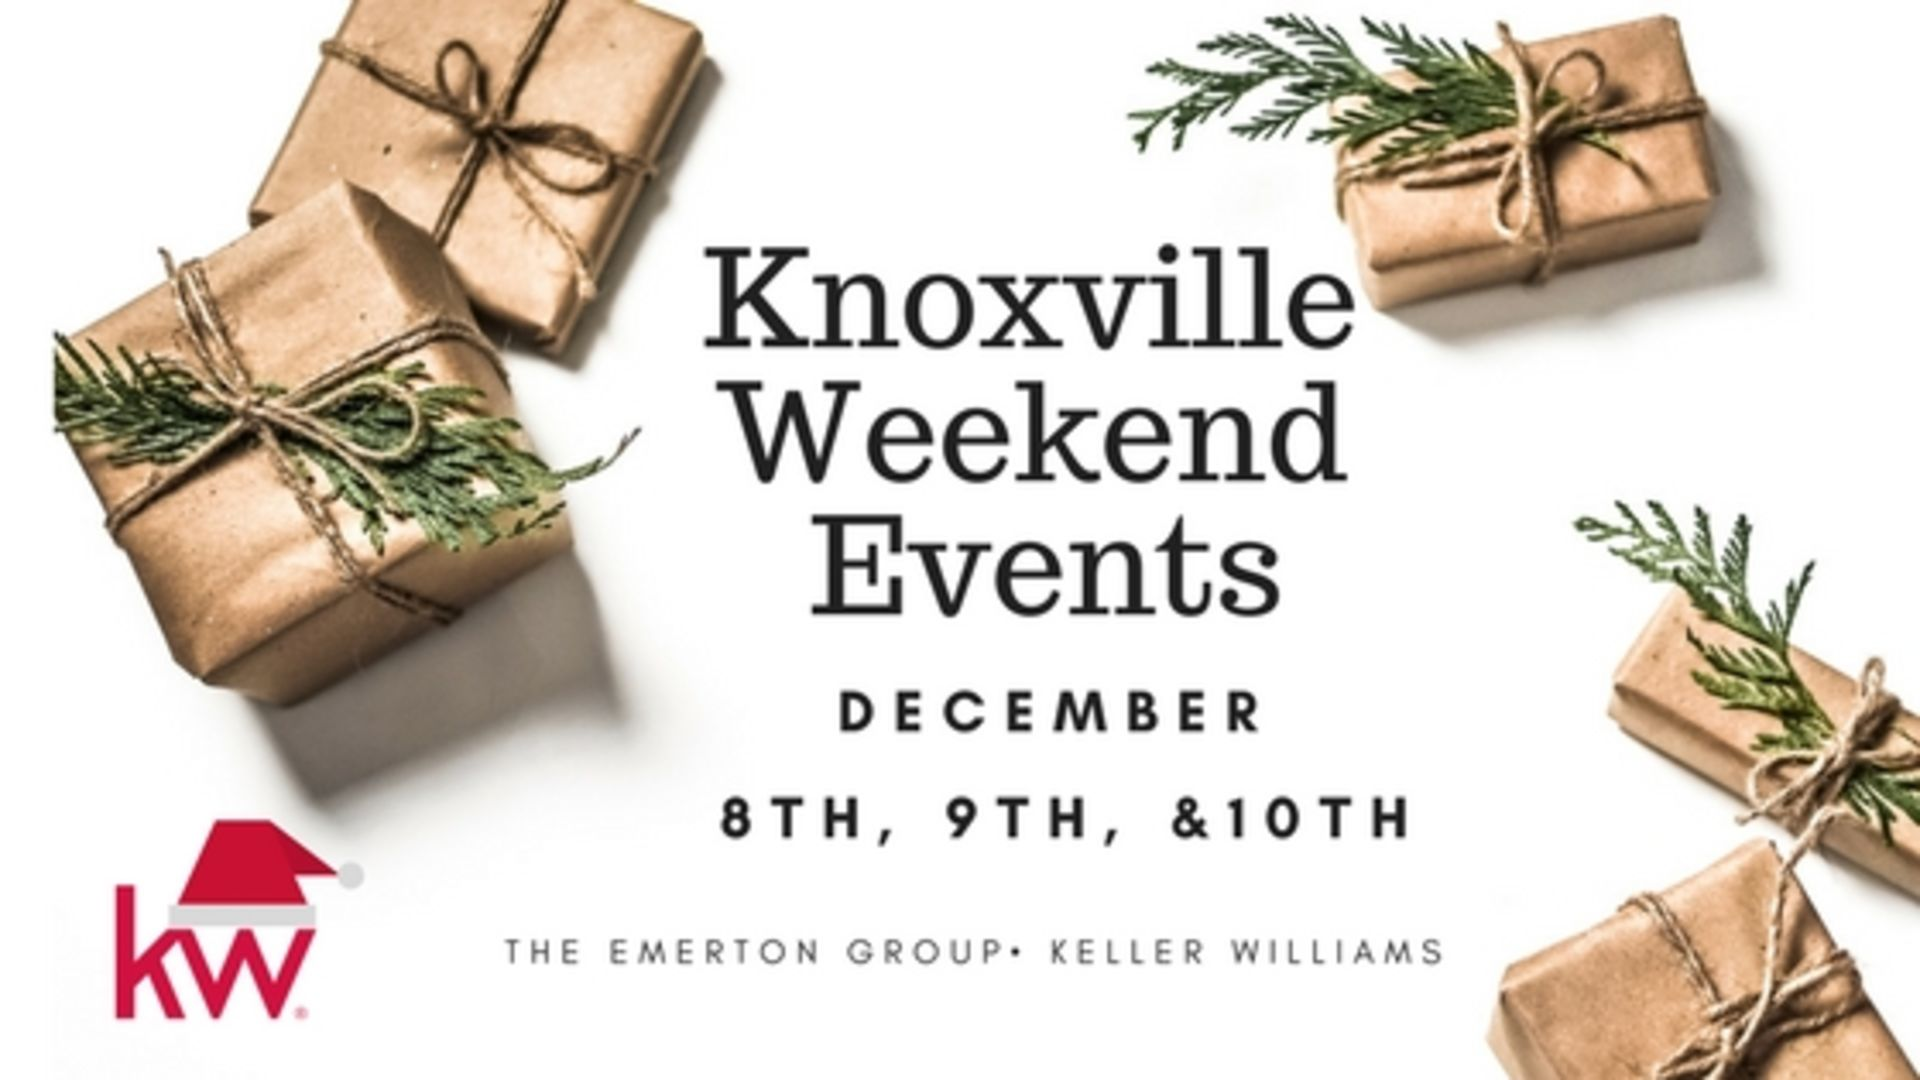 Holiday Fun in Knoxville! December 8th , 9th & 10th 2017